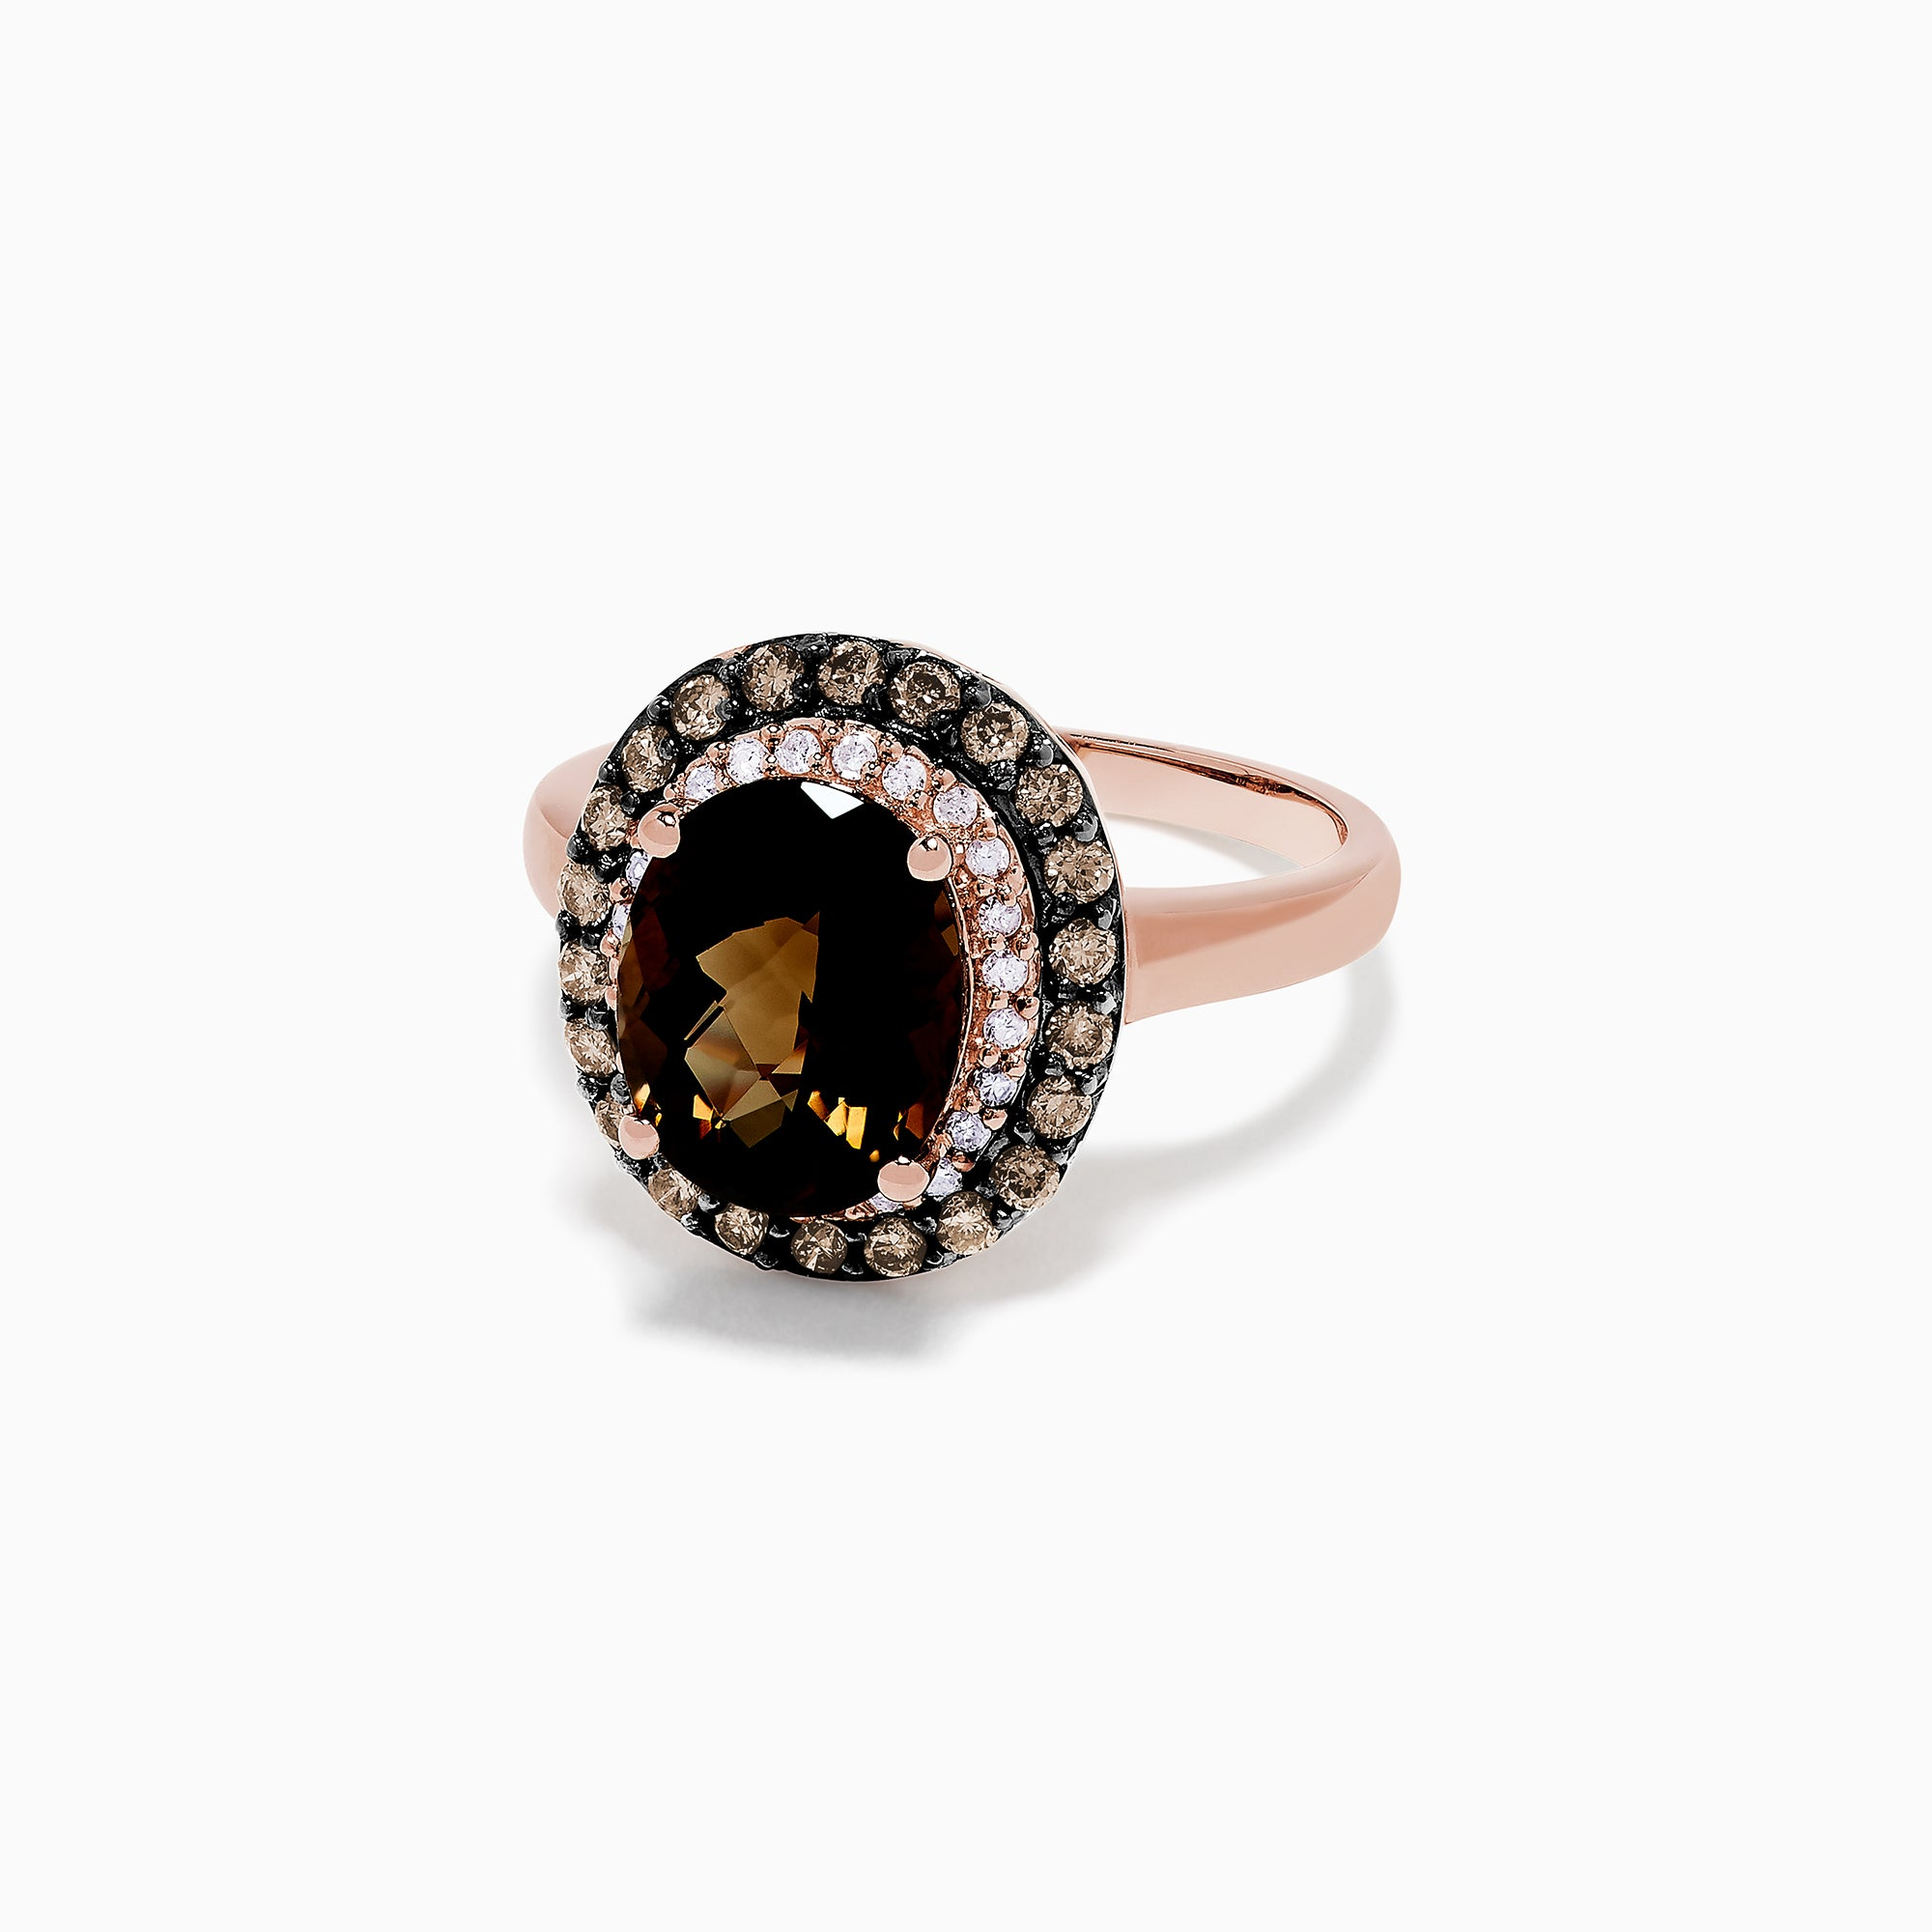 Effy 14K Rose Gold Smokey Quartz and Diamond Ring, 2.85 TCW